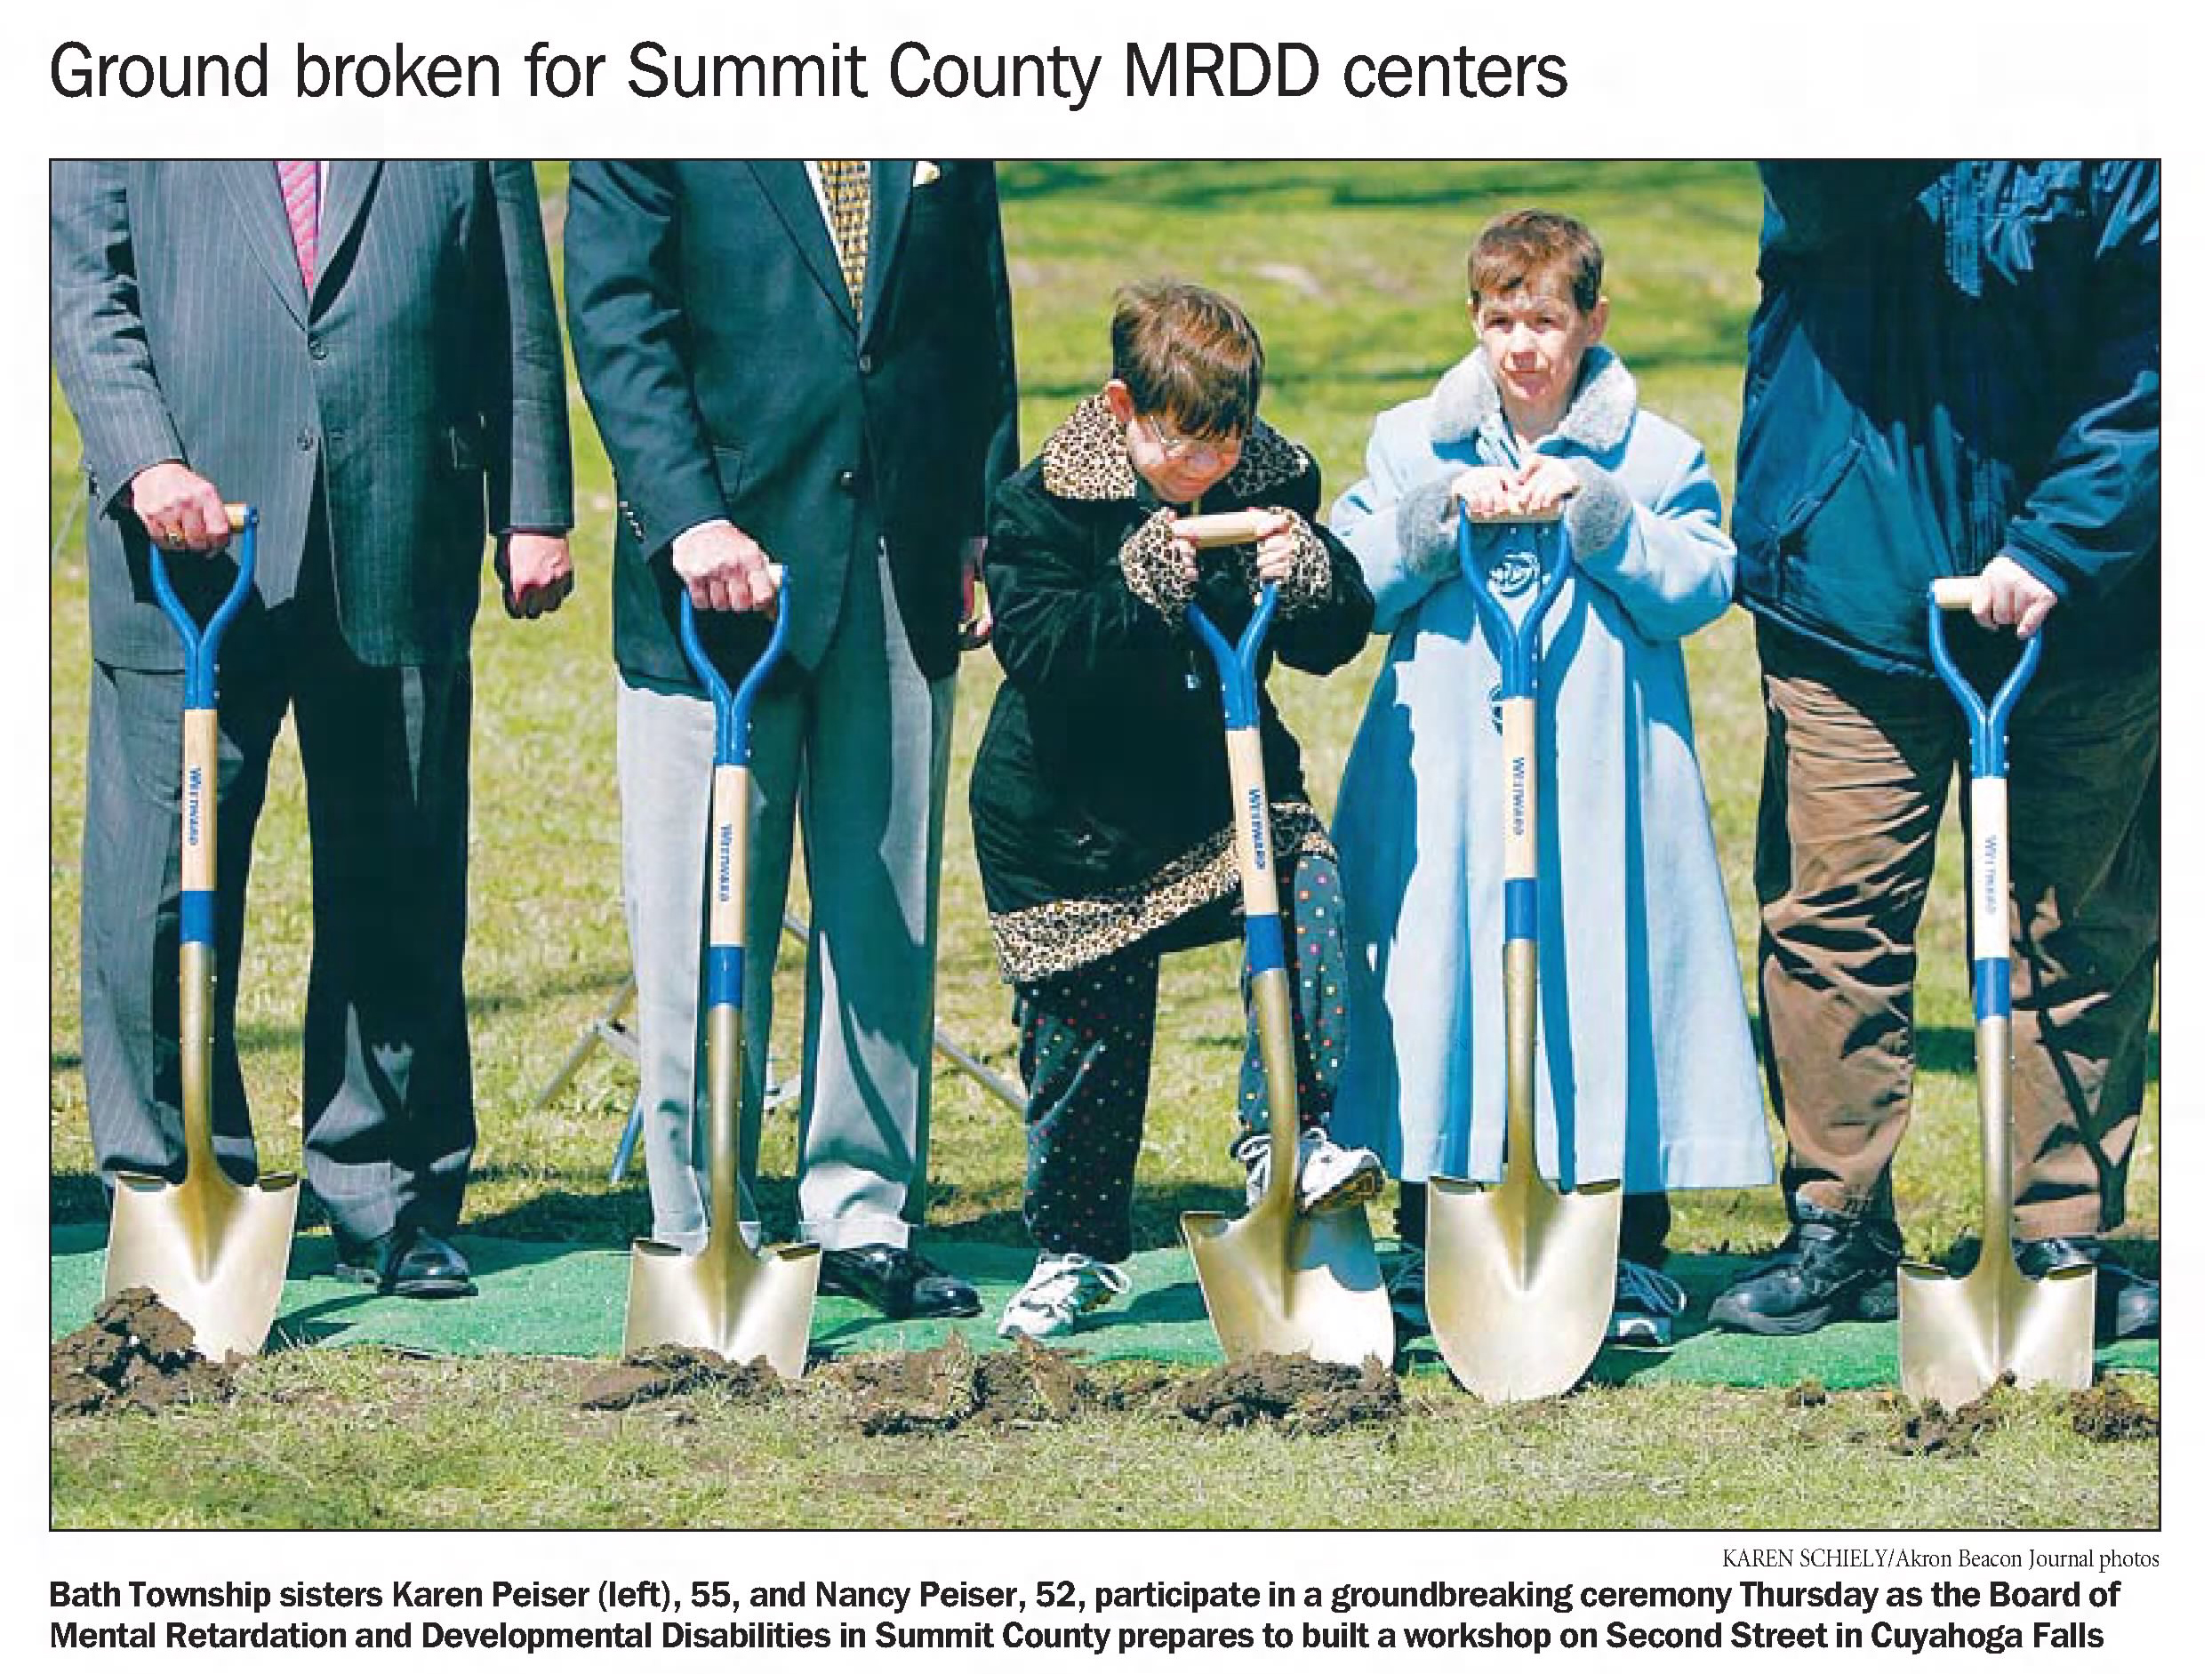 2009 Barberton and CF Centers ABJ Article